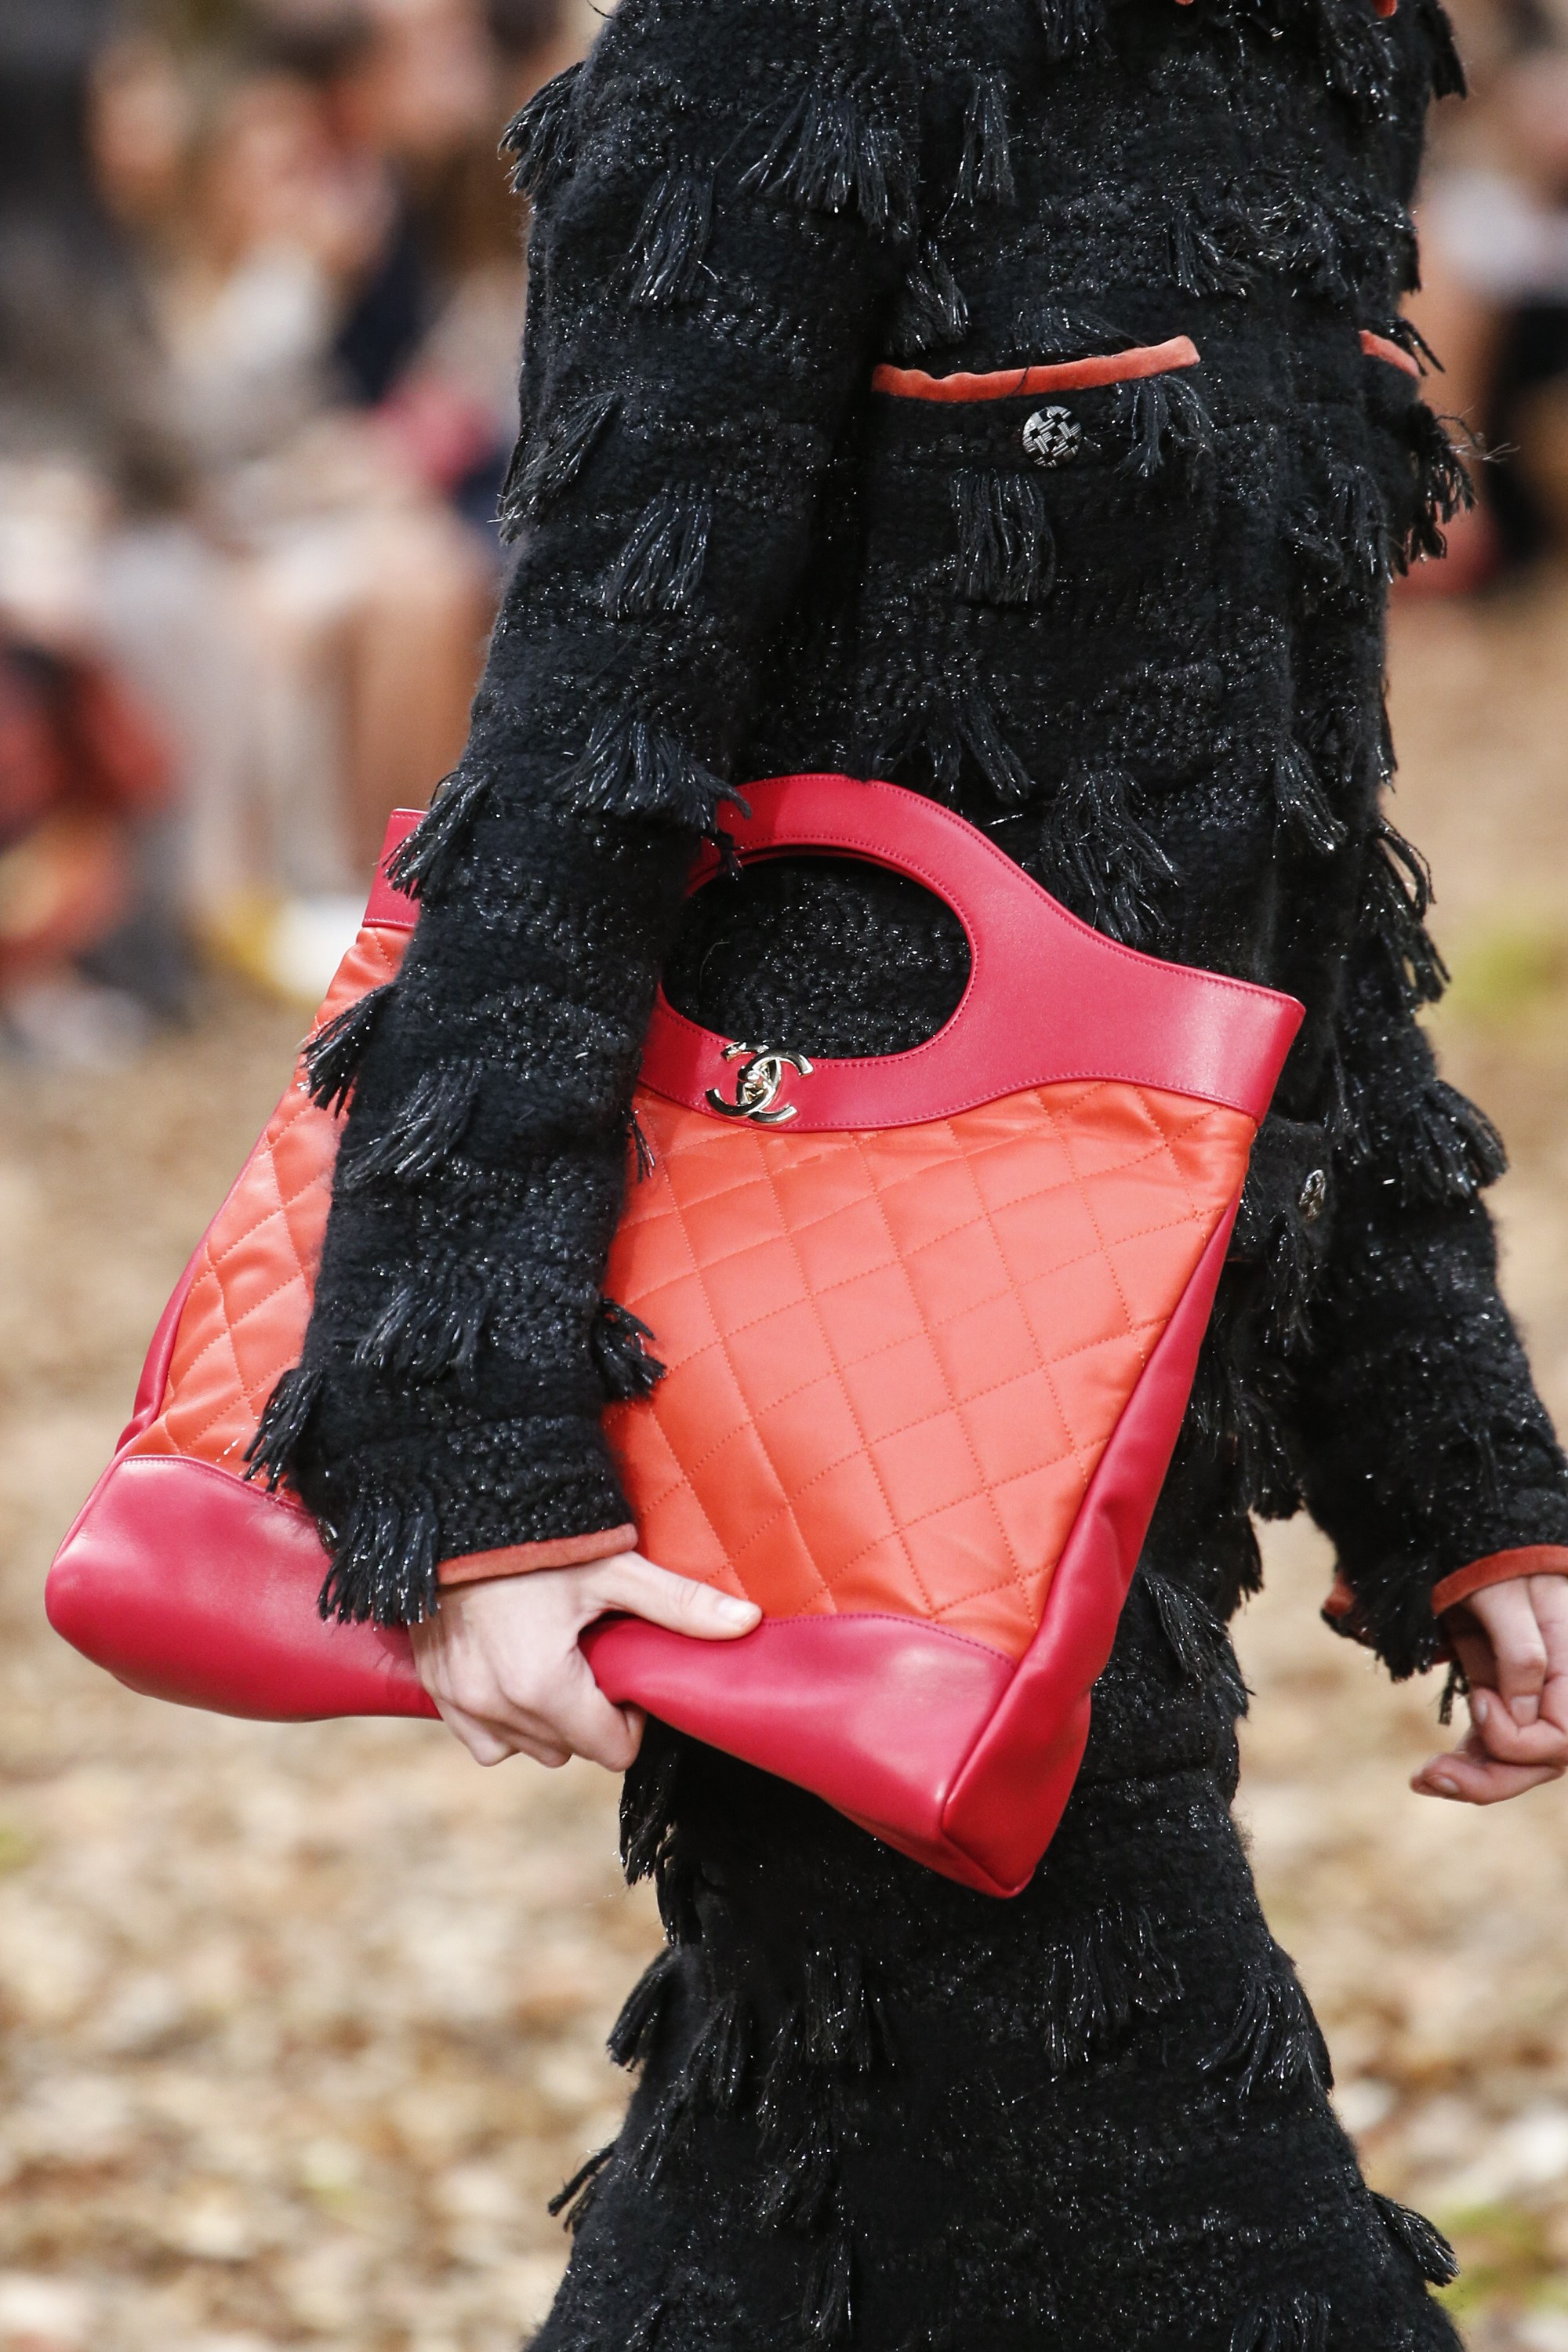 Chanel Fall/Winter 2018 Runway Bag Collection